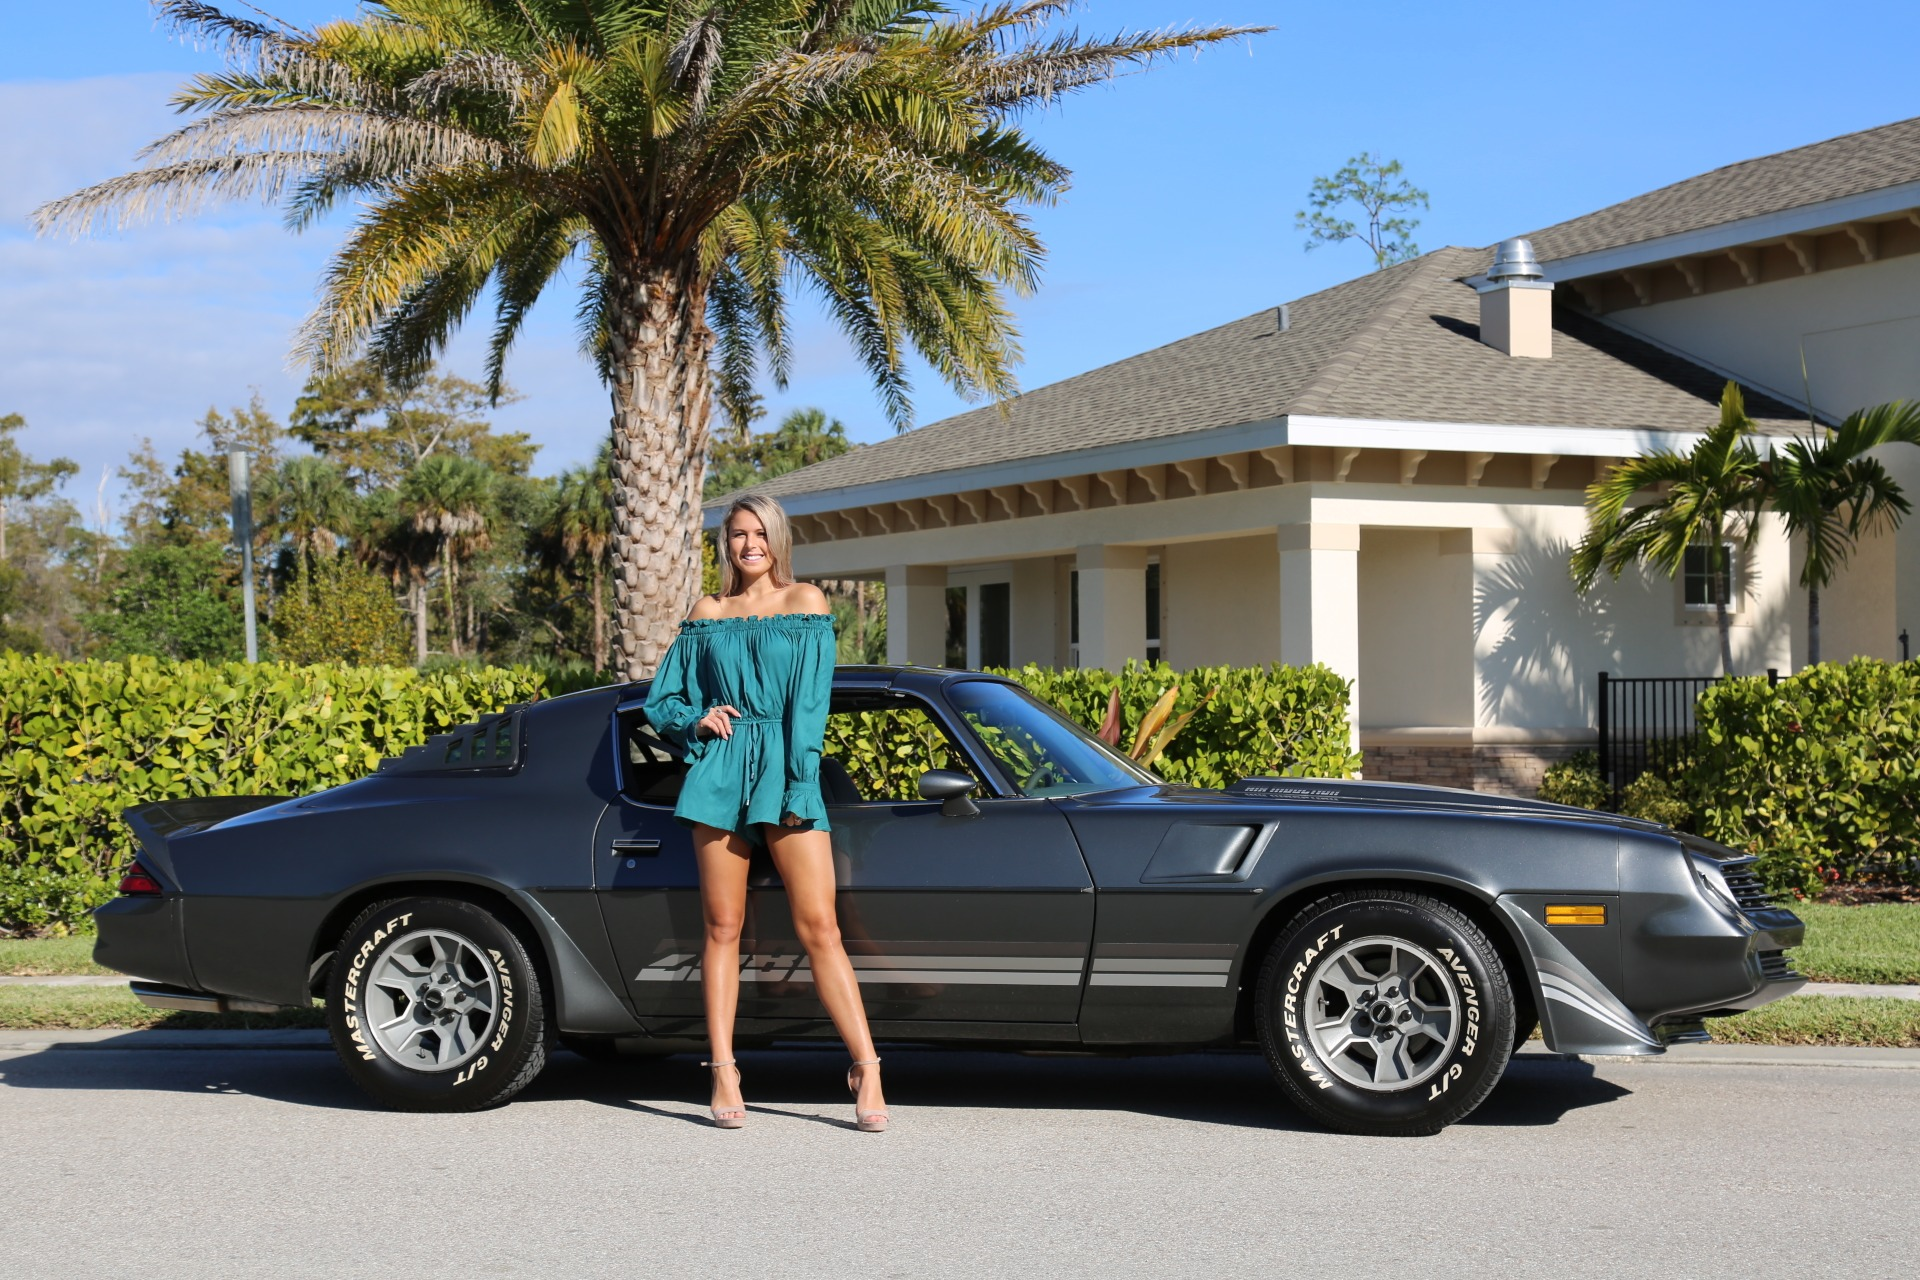 Used 1980 Chevrolet Camaro Z28 for sale Sold at Muscle Cars for Sale Inc. in Fort Myers FL 33912 3